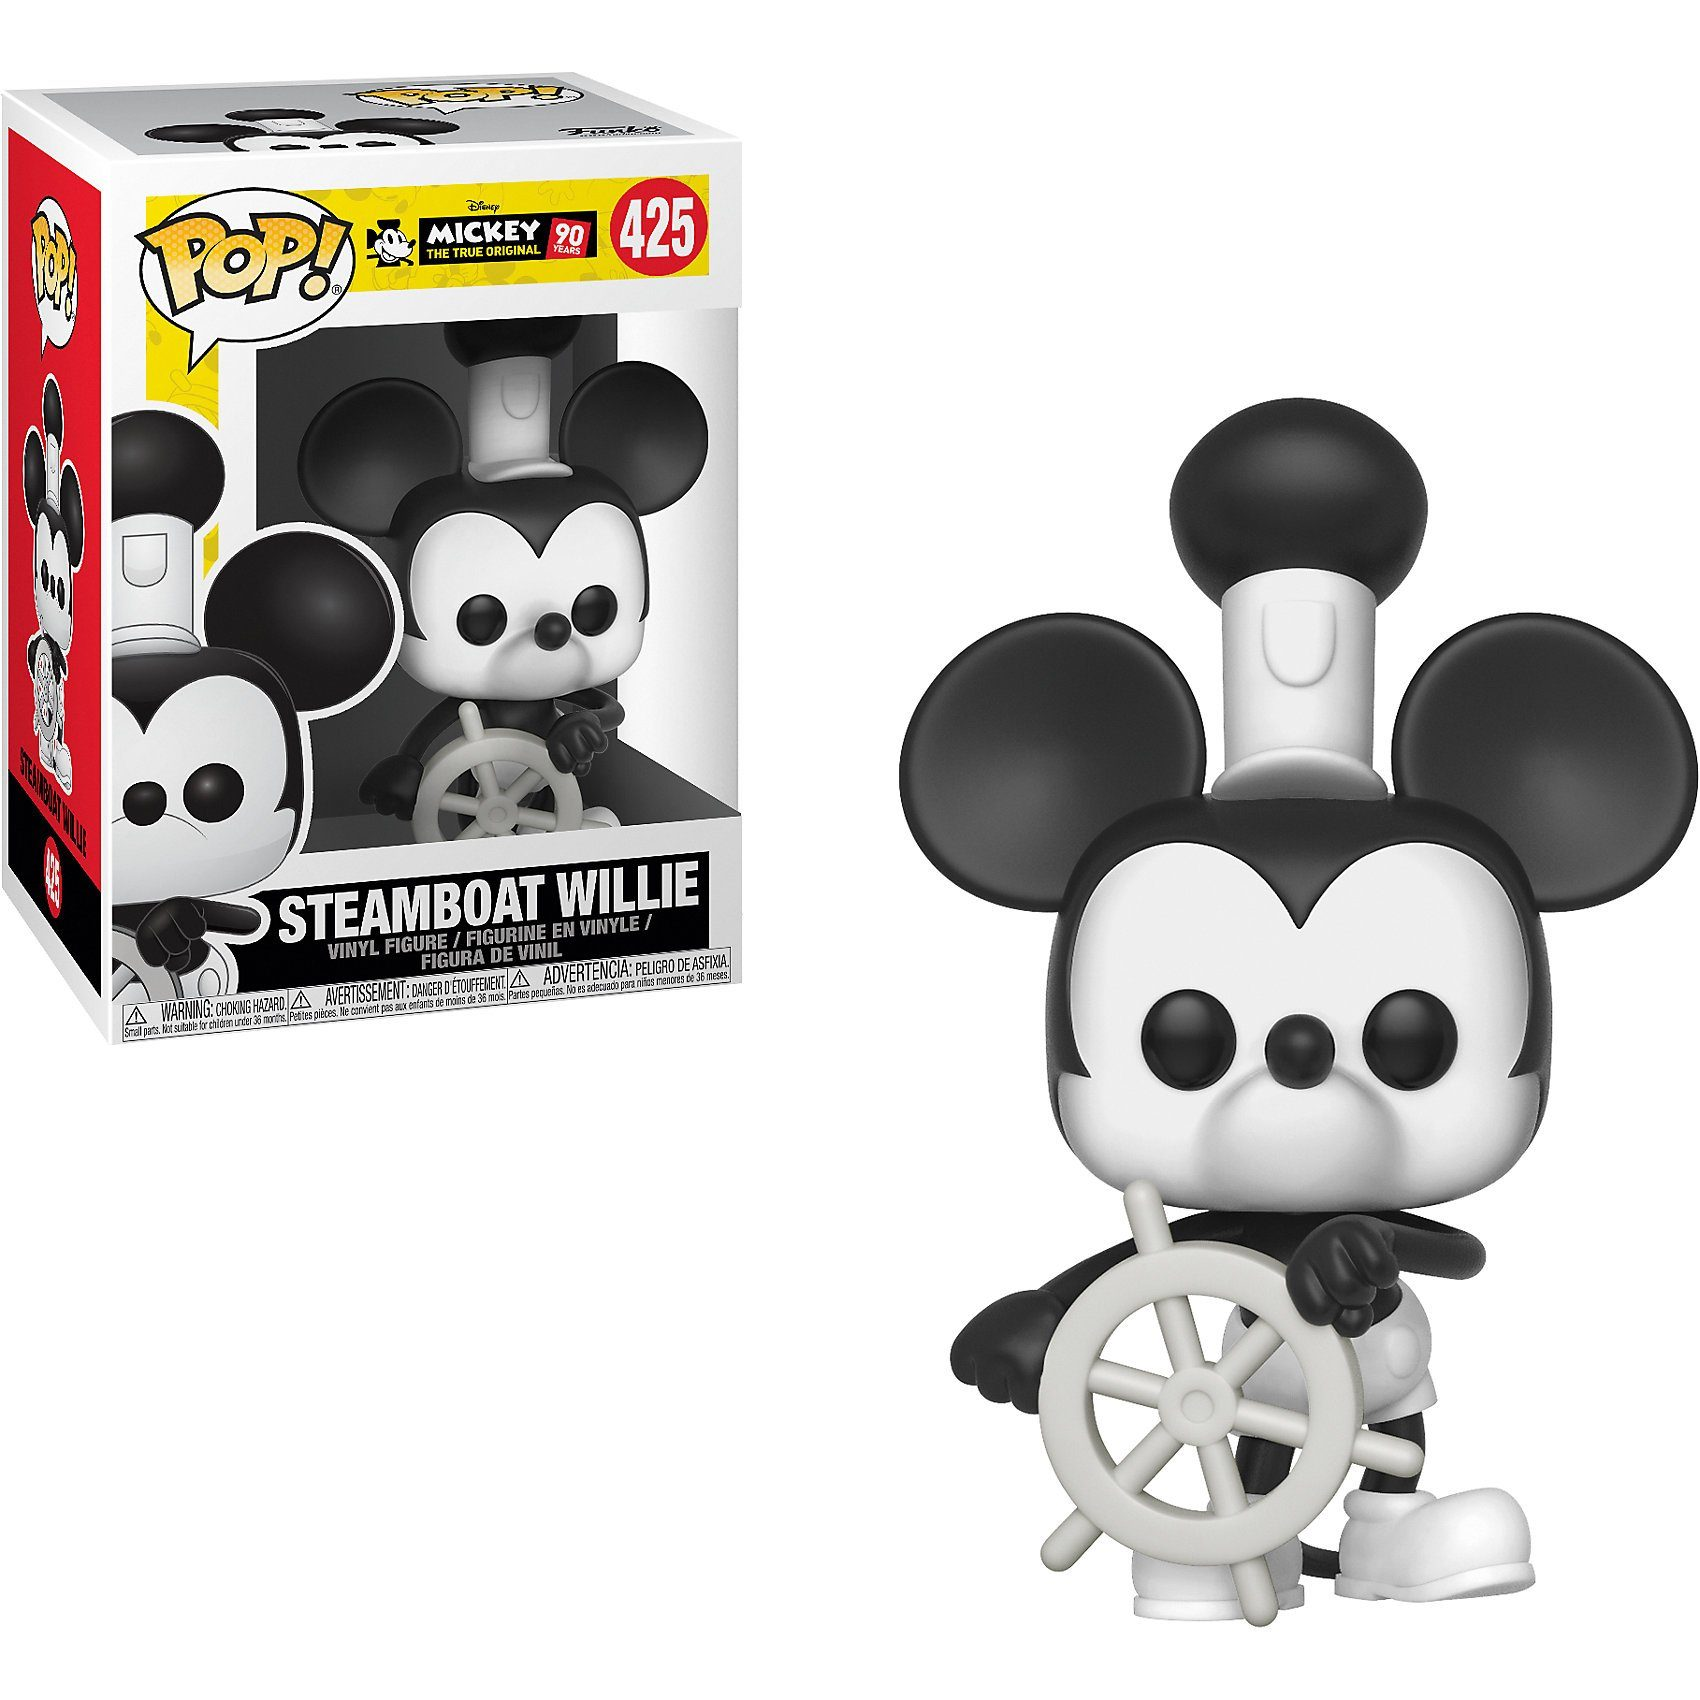 Funko POP! Disney: Mickey's 90th - Steamboat Willie